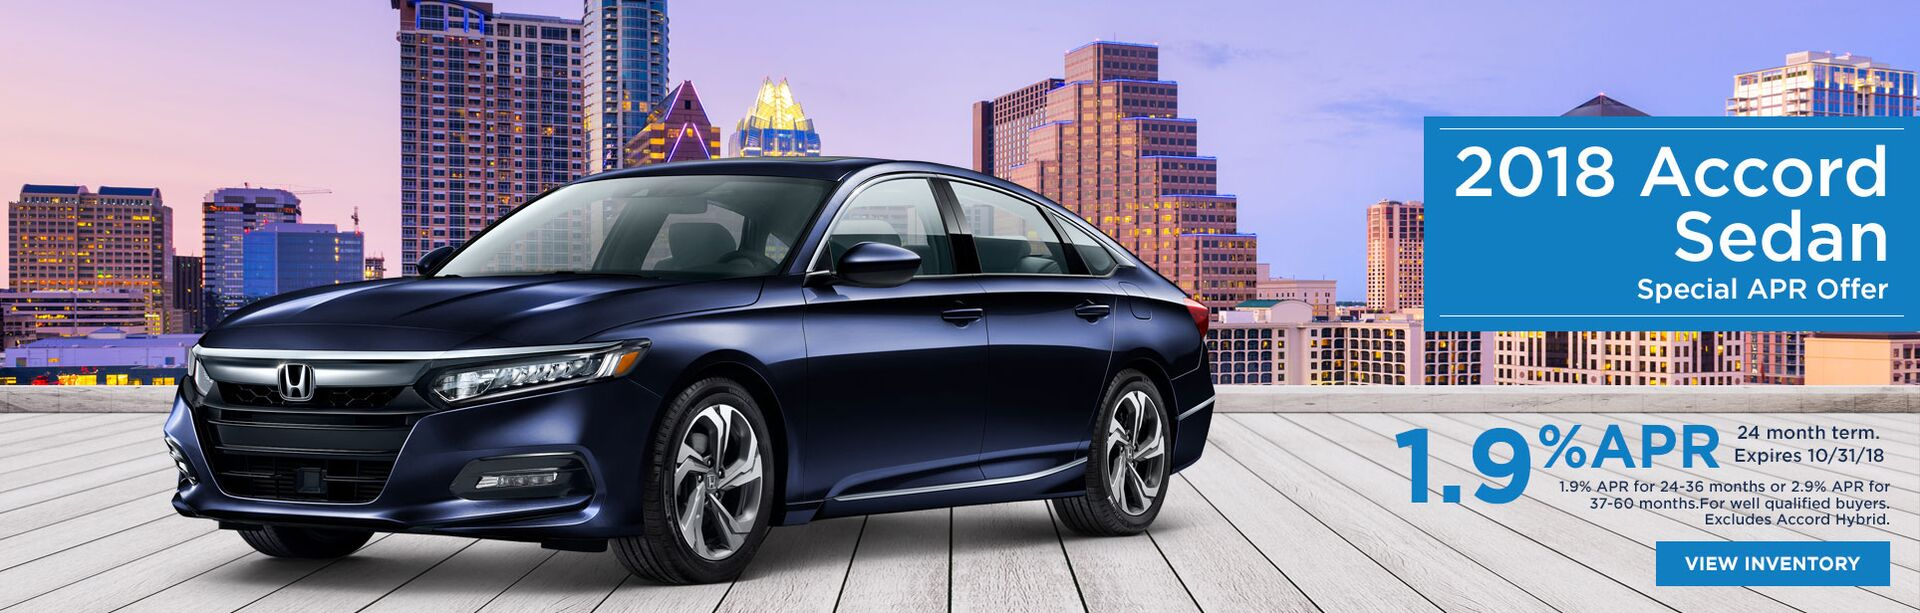 Honda Dealership Kansas City >> Honda Dealership Austin Tx Best Car Price 2020